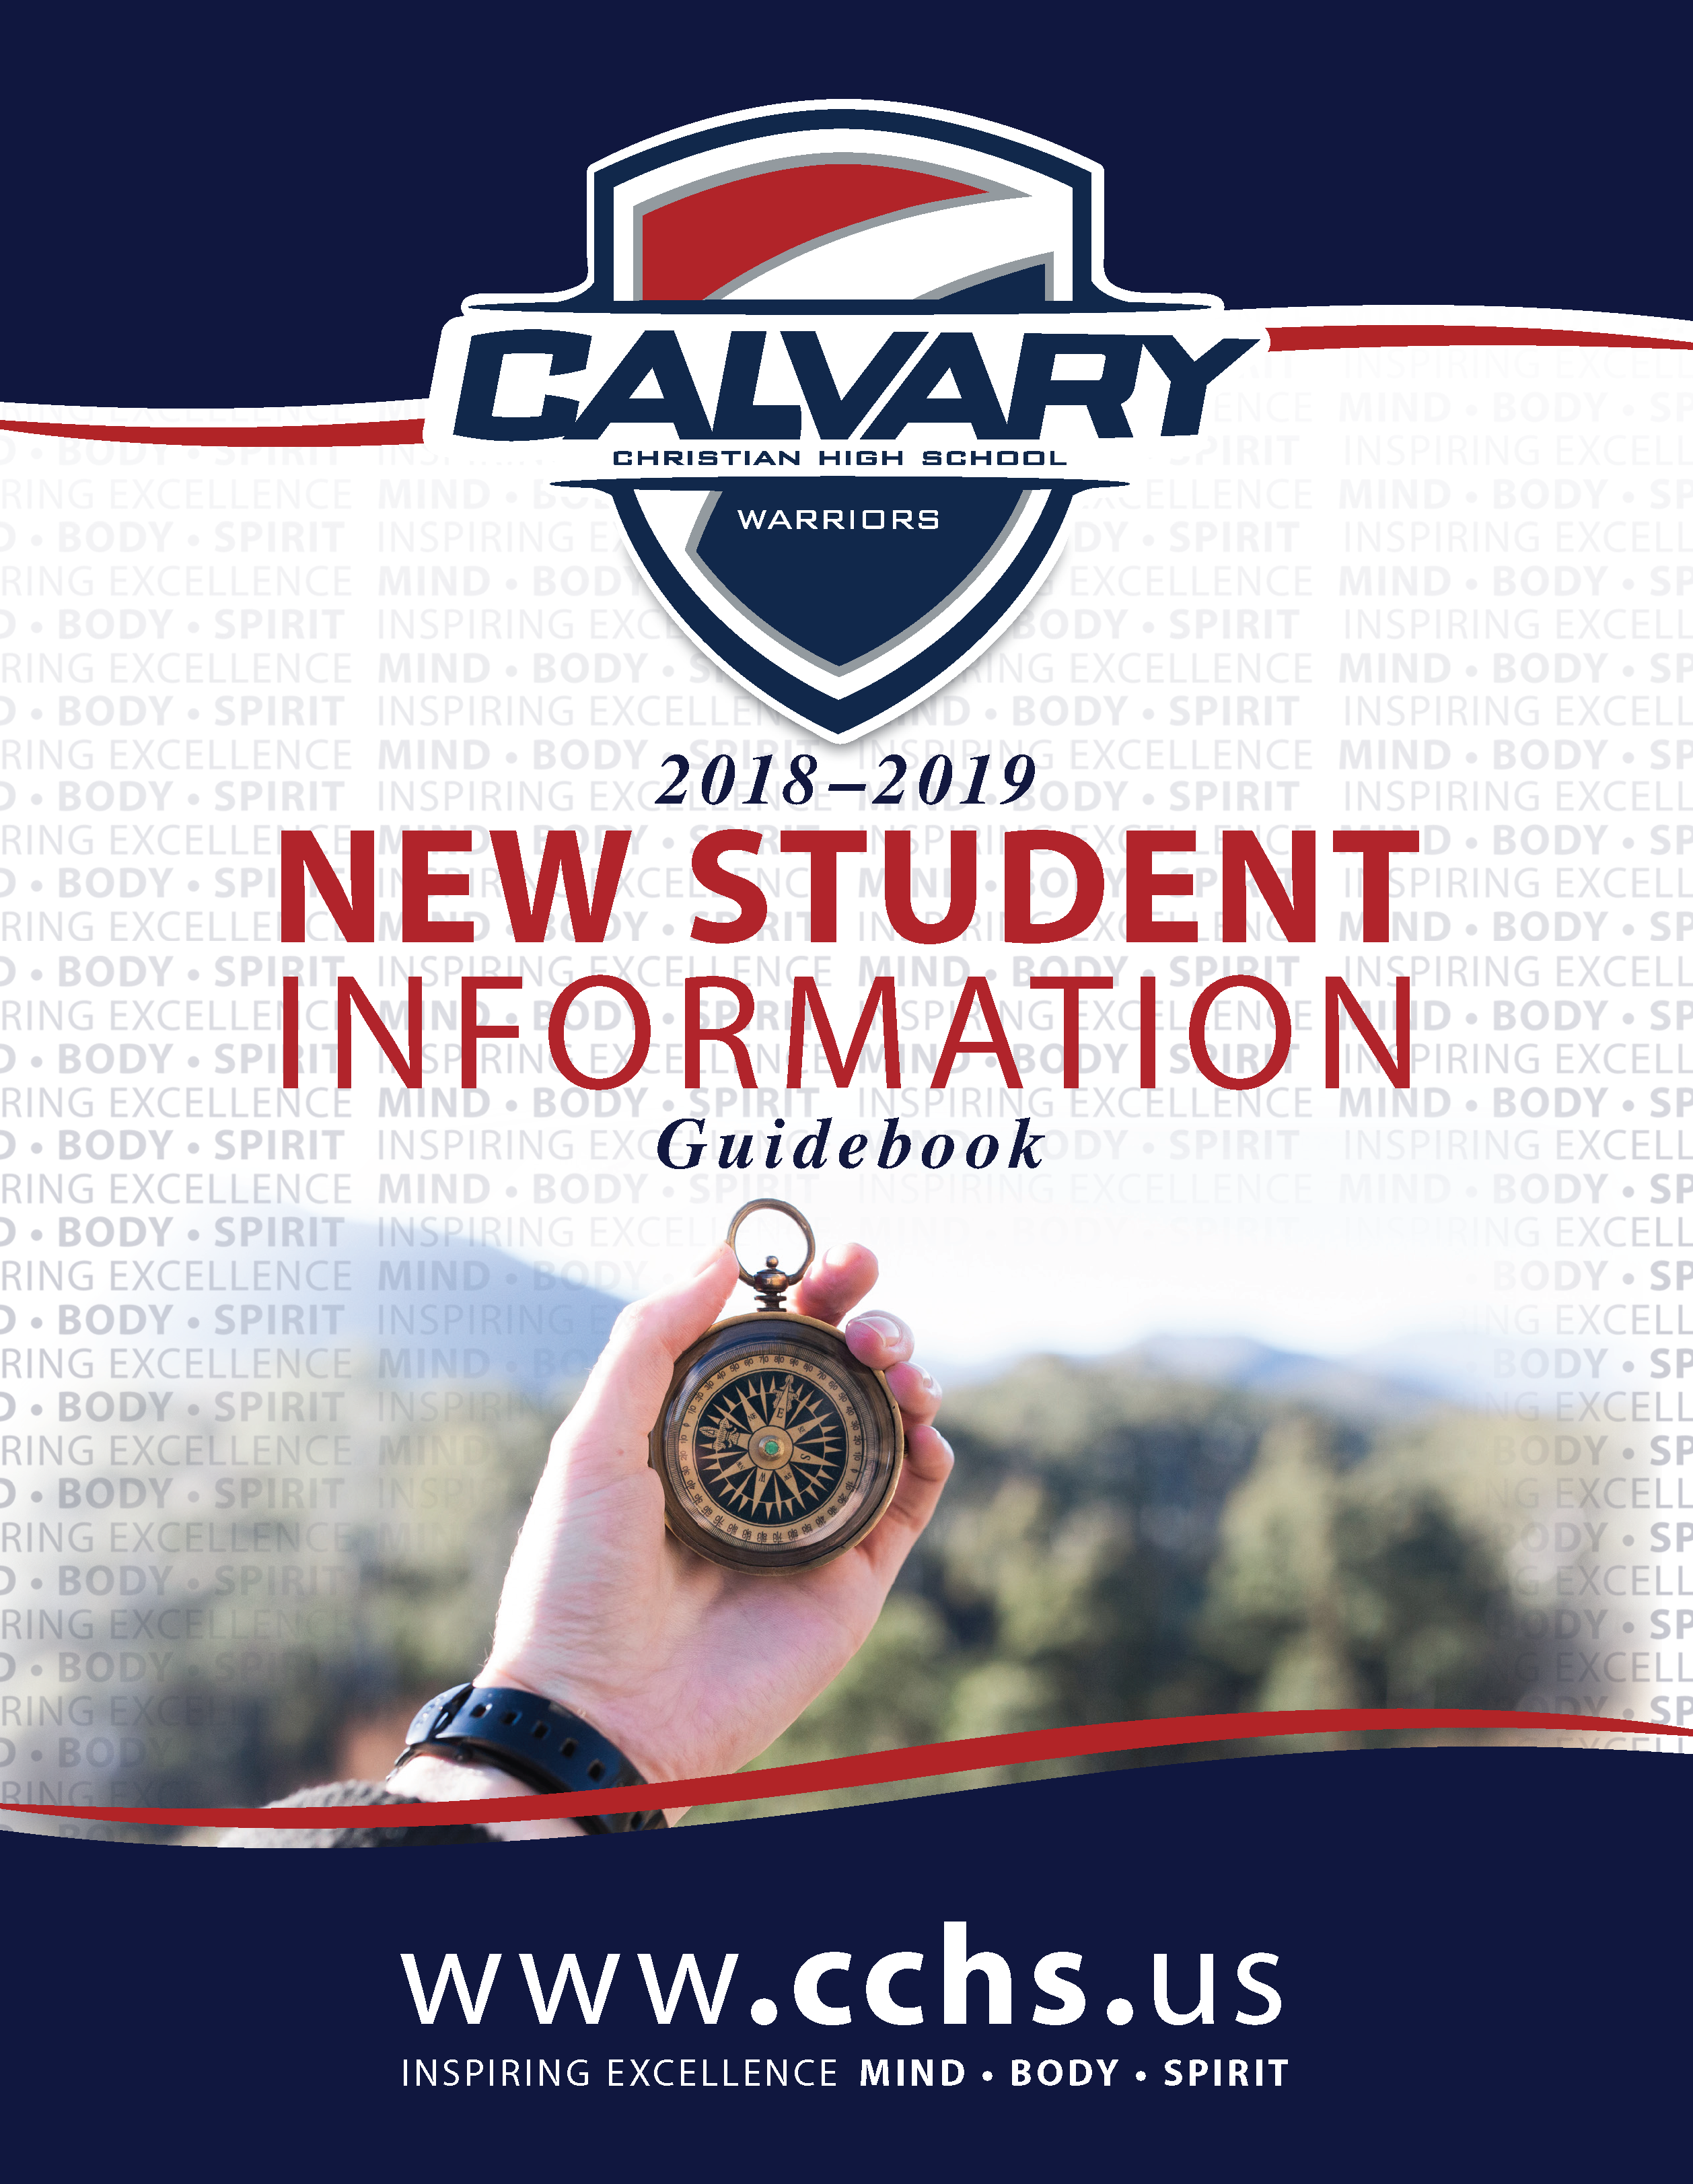 New Student Information Guidebook